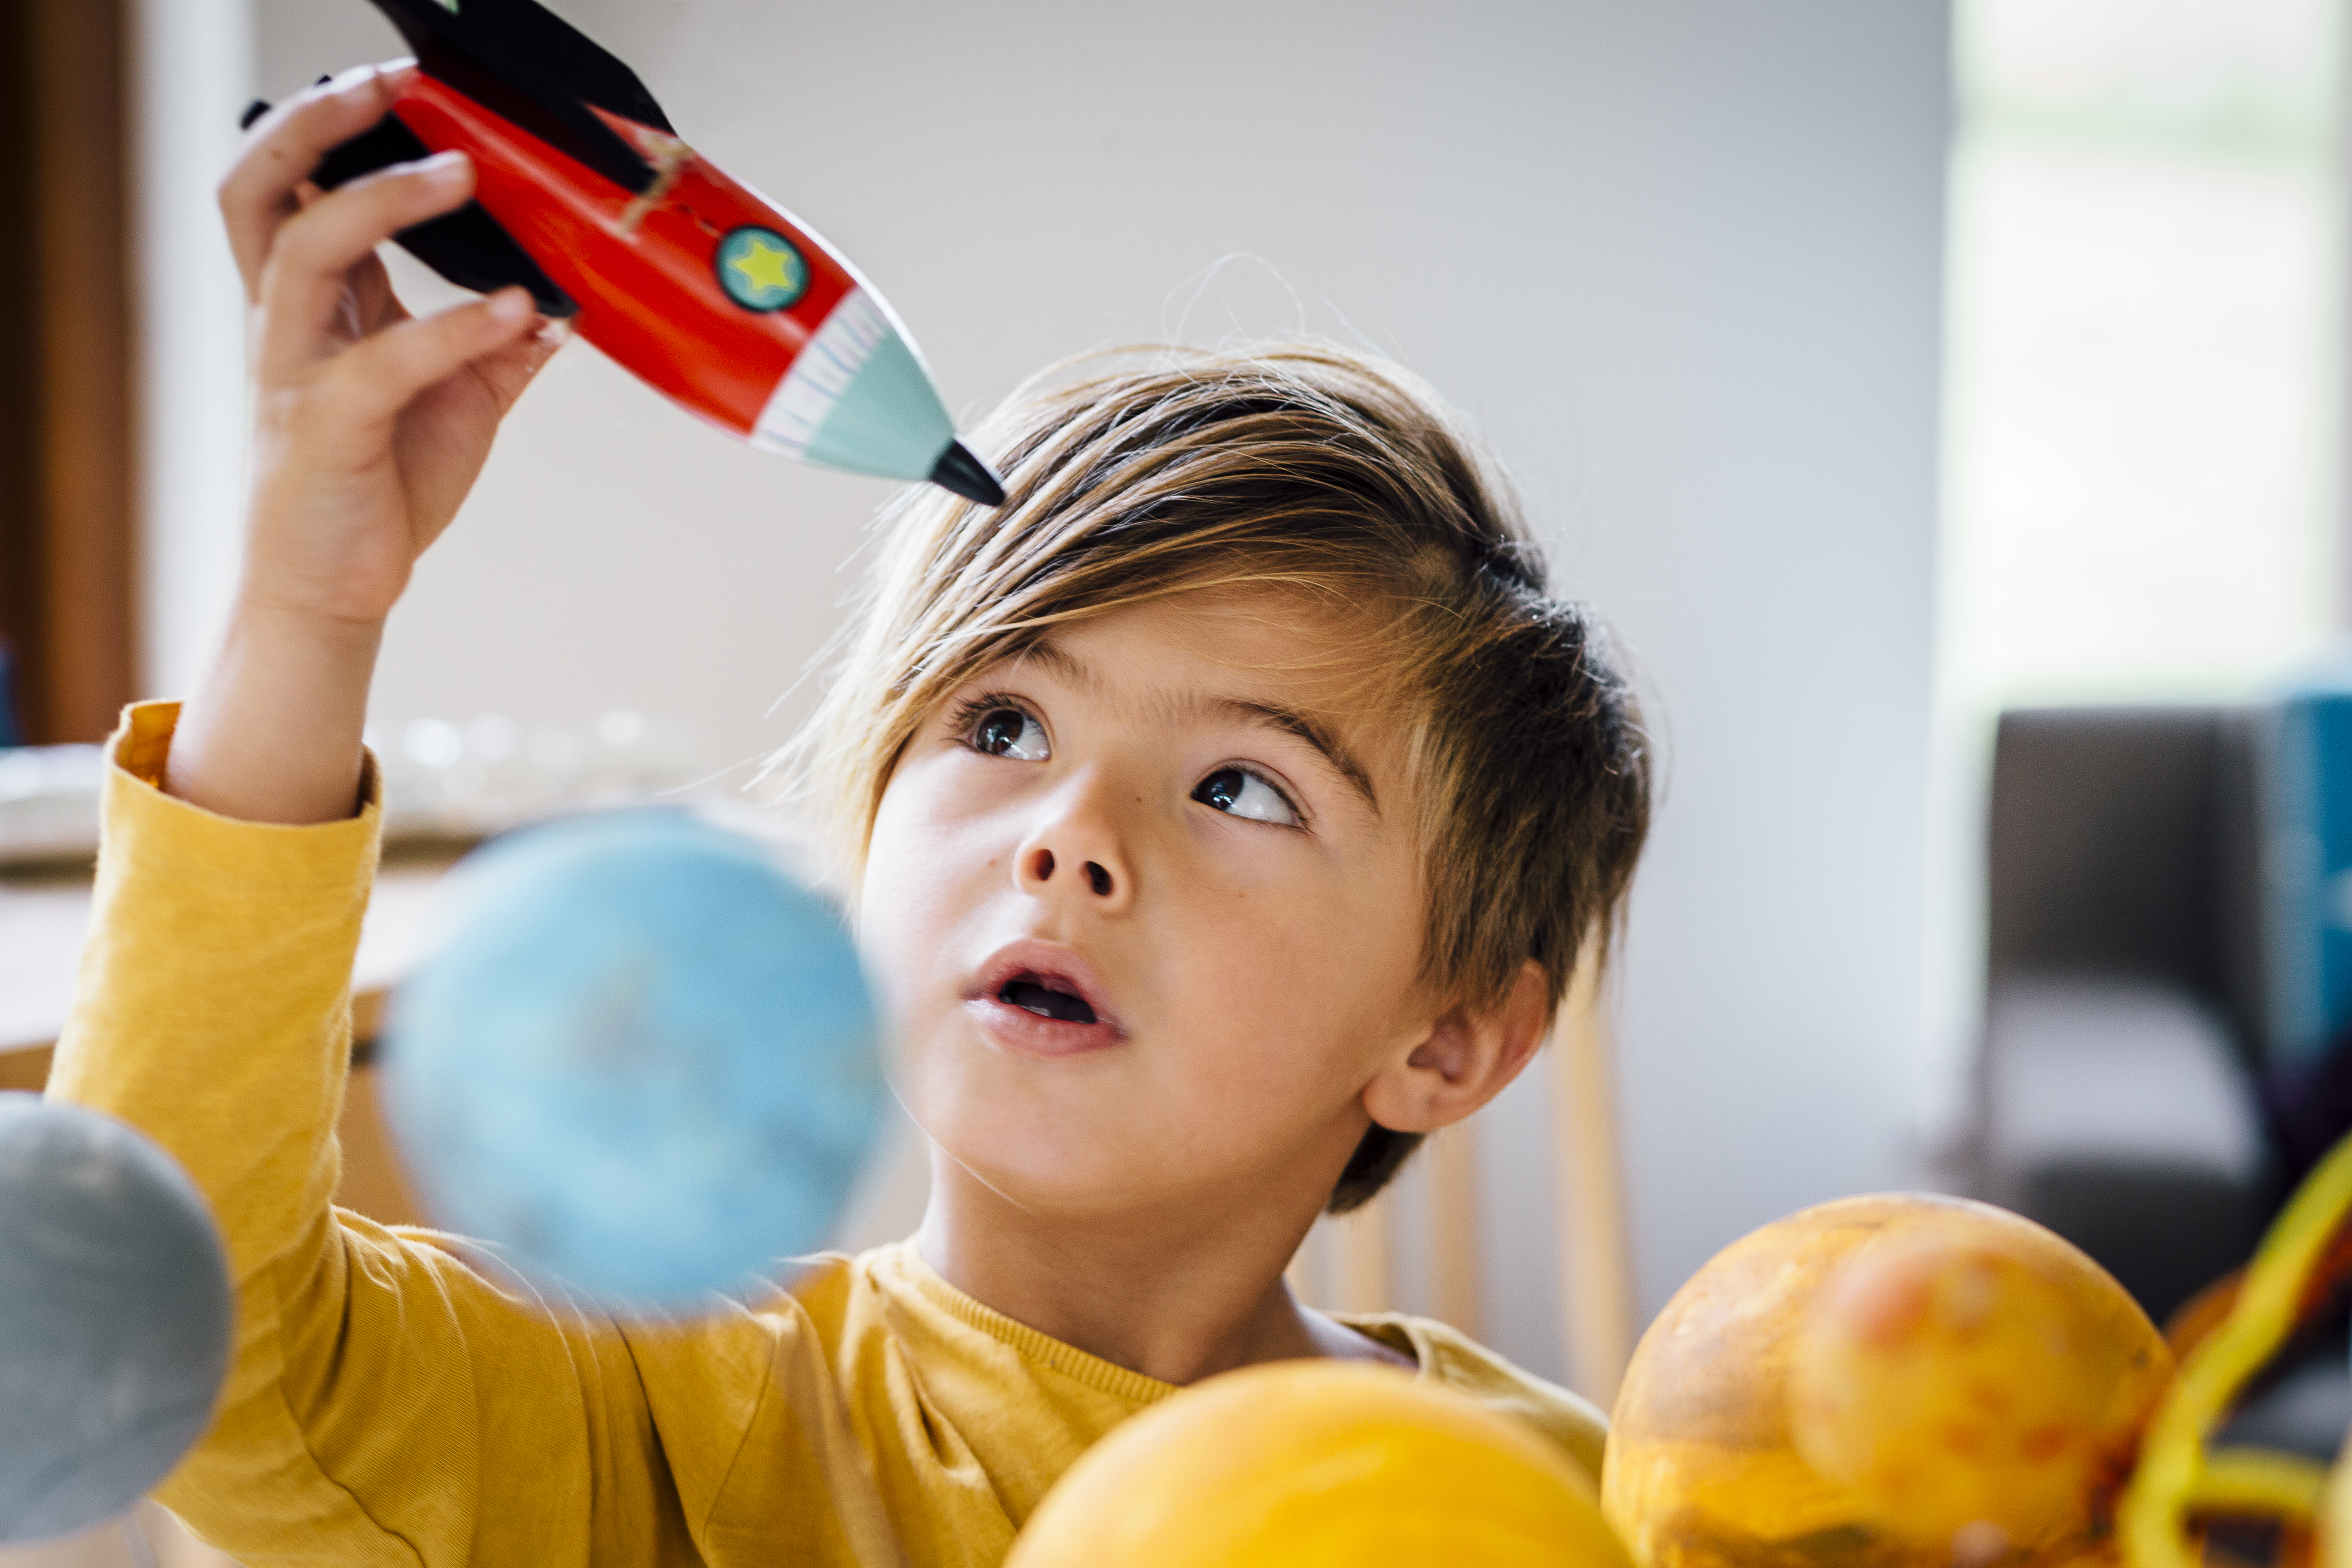 Little boy playing with his homemade planetarium as he holds a rocket with arms raised as he plays.